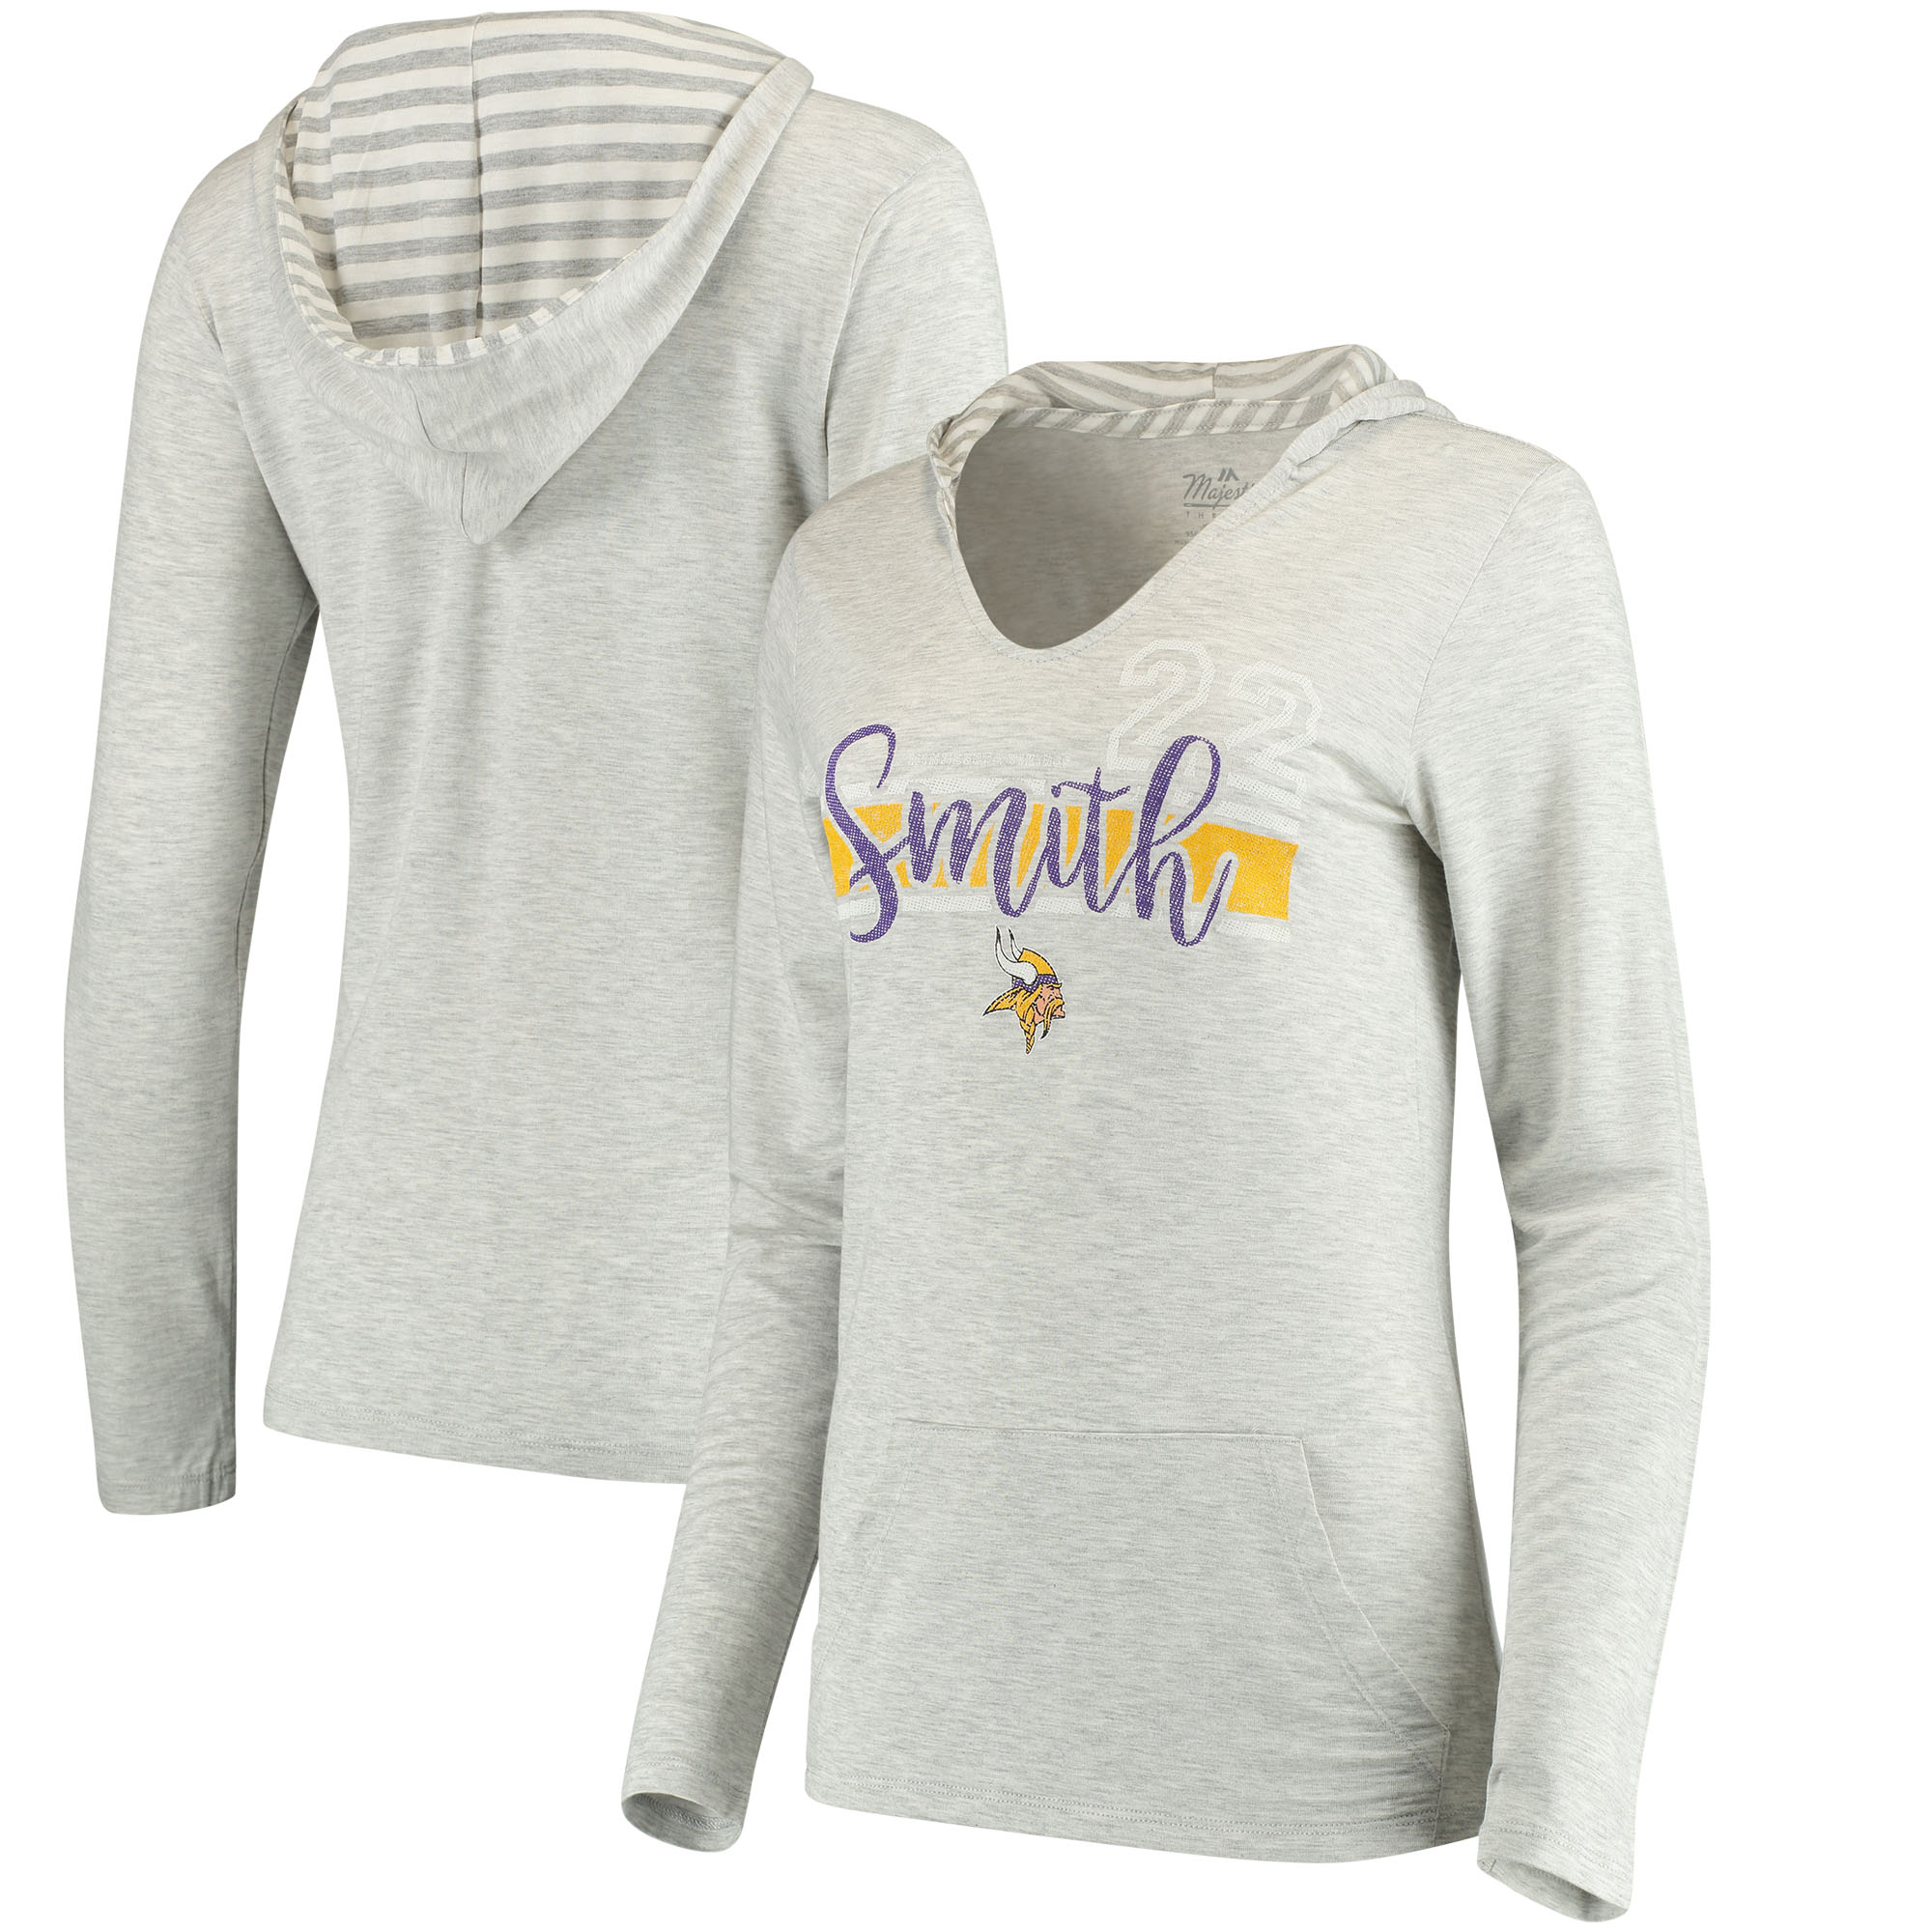 Harrison Smith Minnesota Vikings Women's Pocket Name & Number Hoodie T-Shirt - Gray